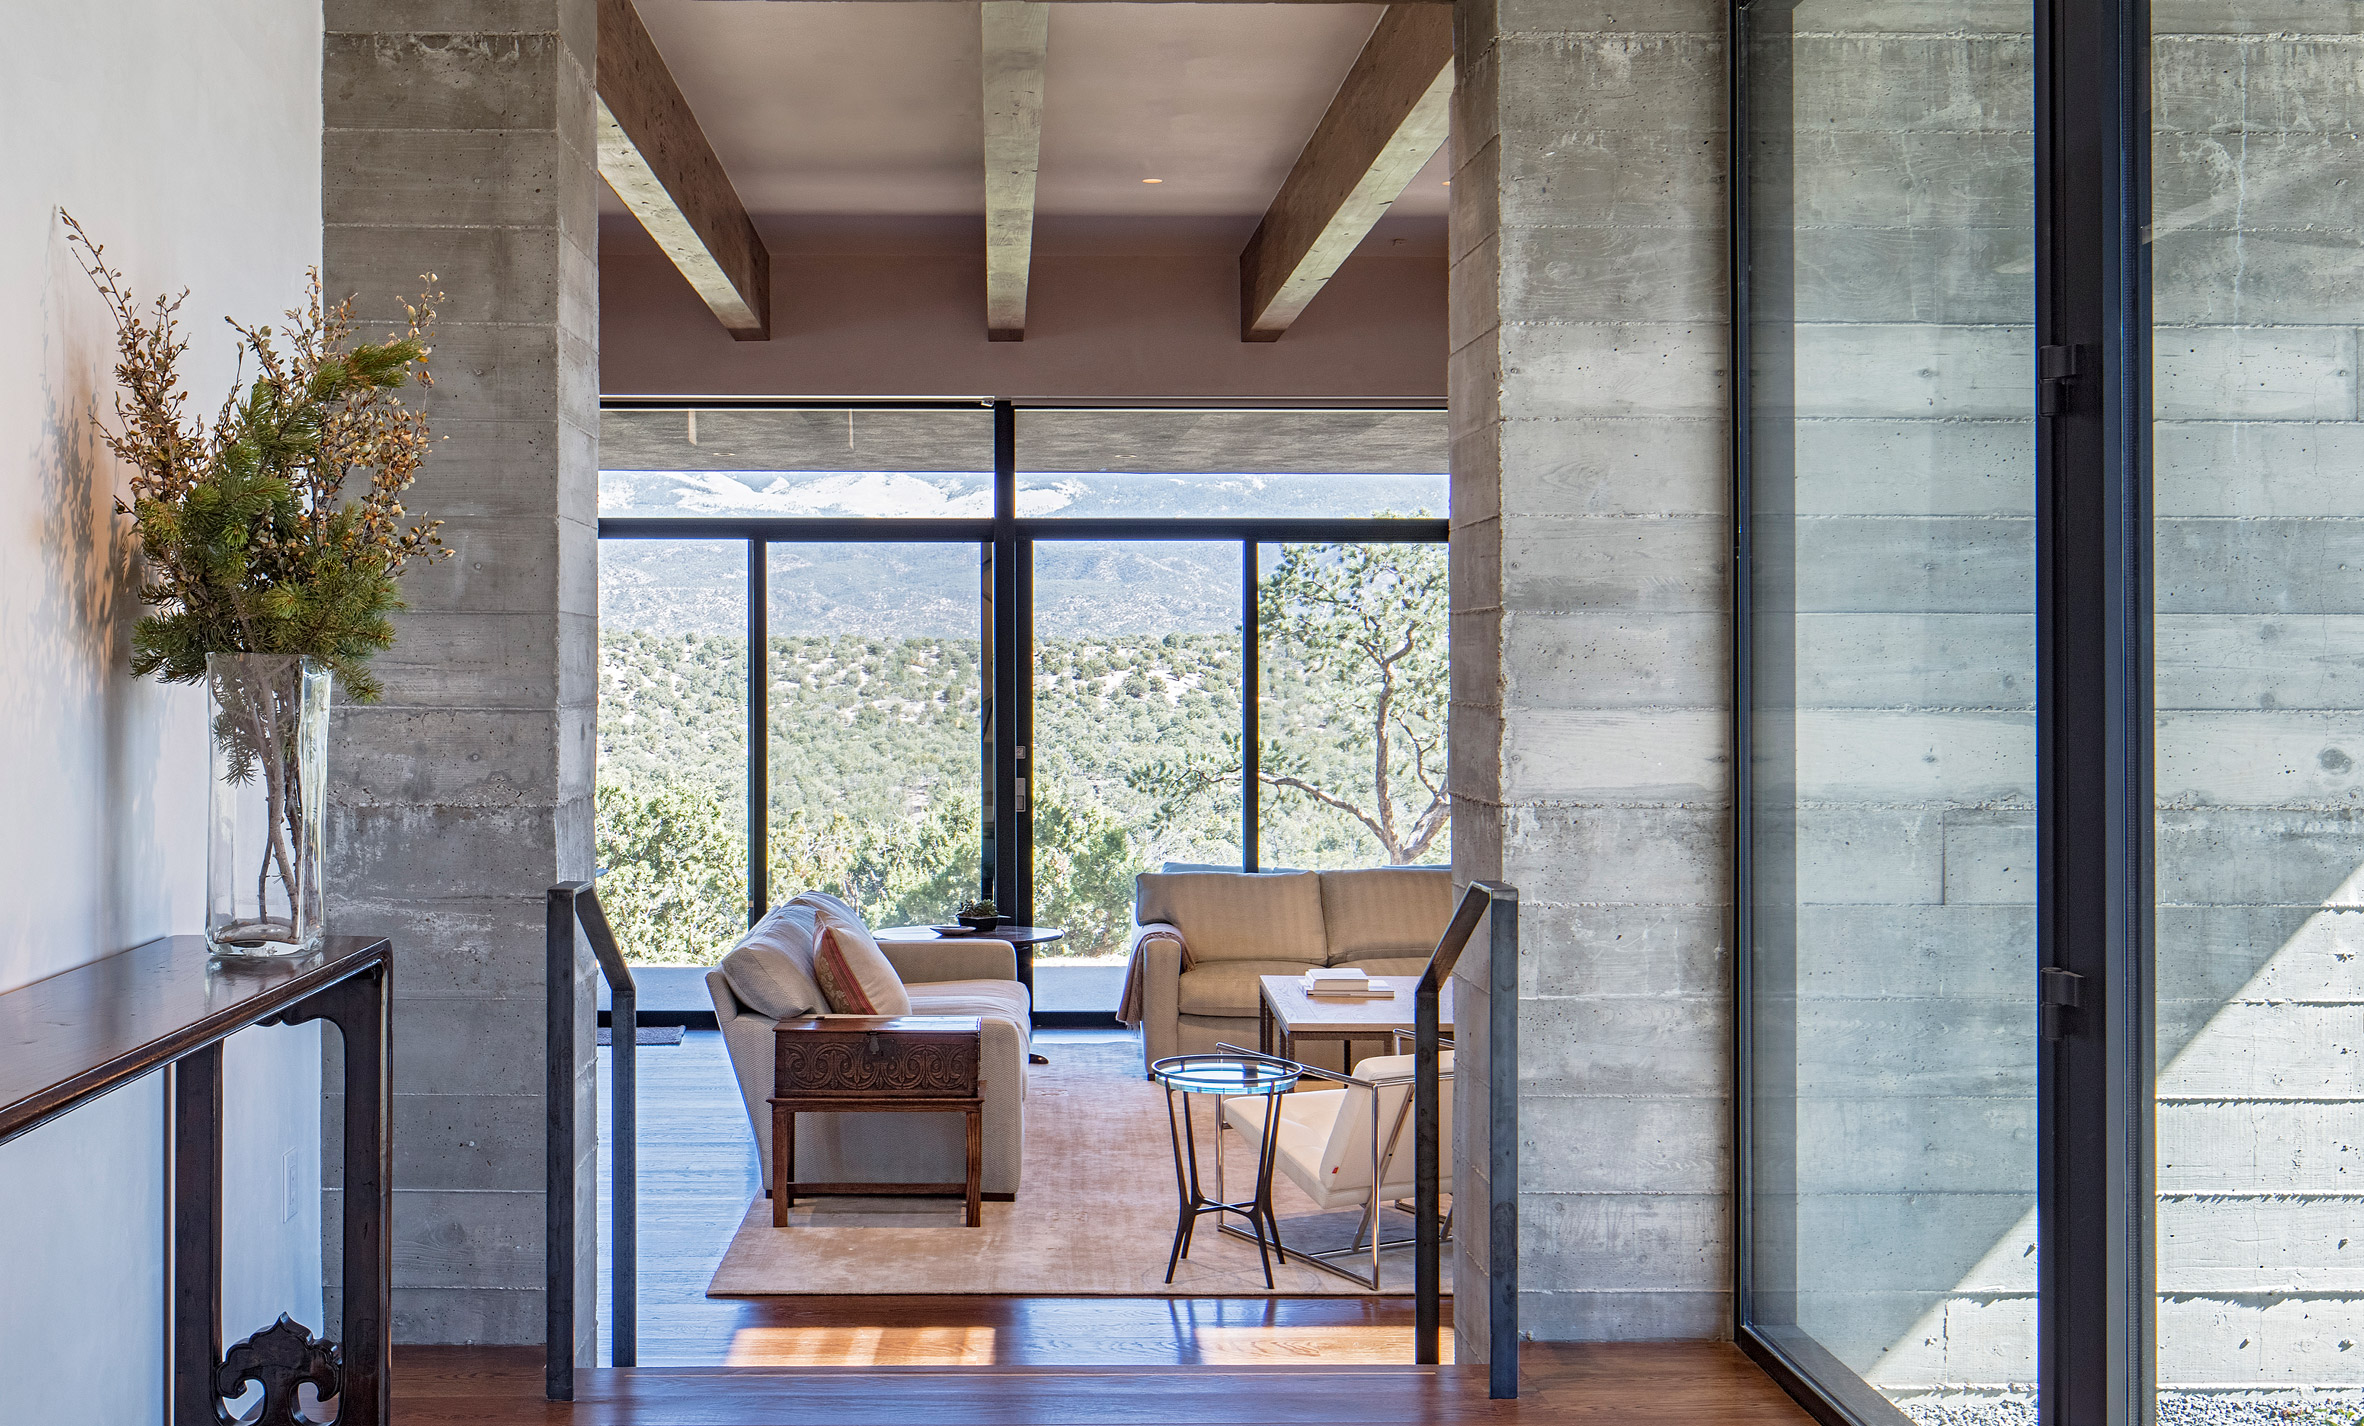 Specht Architects orients recessed New Mexico house towards desert vistas